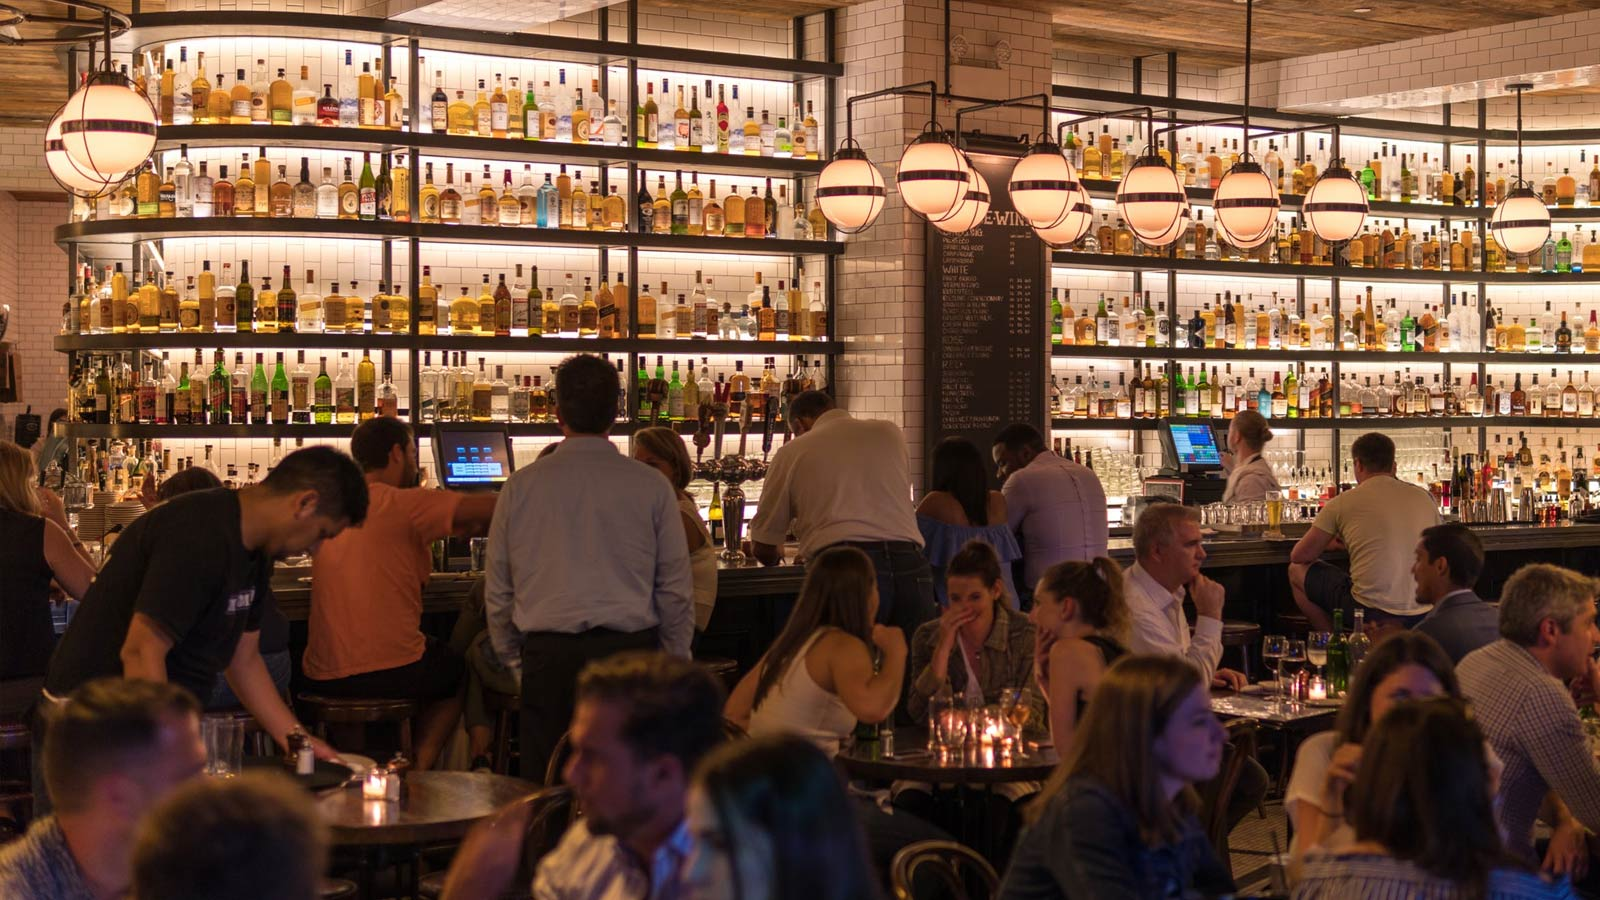 Best Bars In Chicago To Unwind From Work